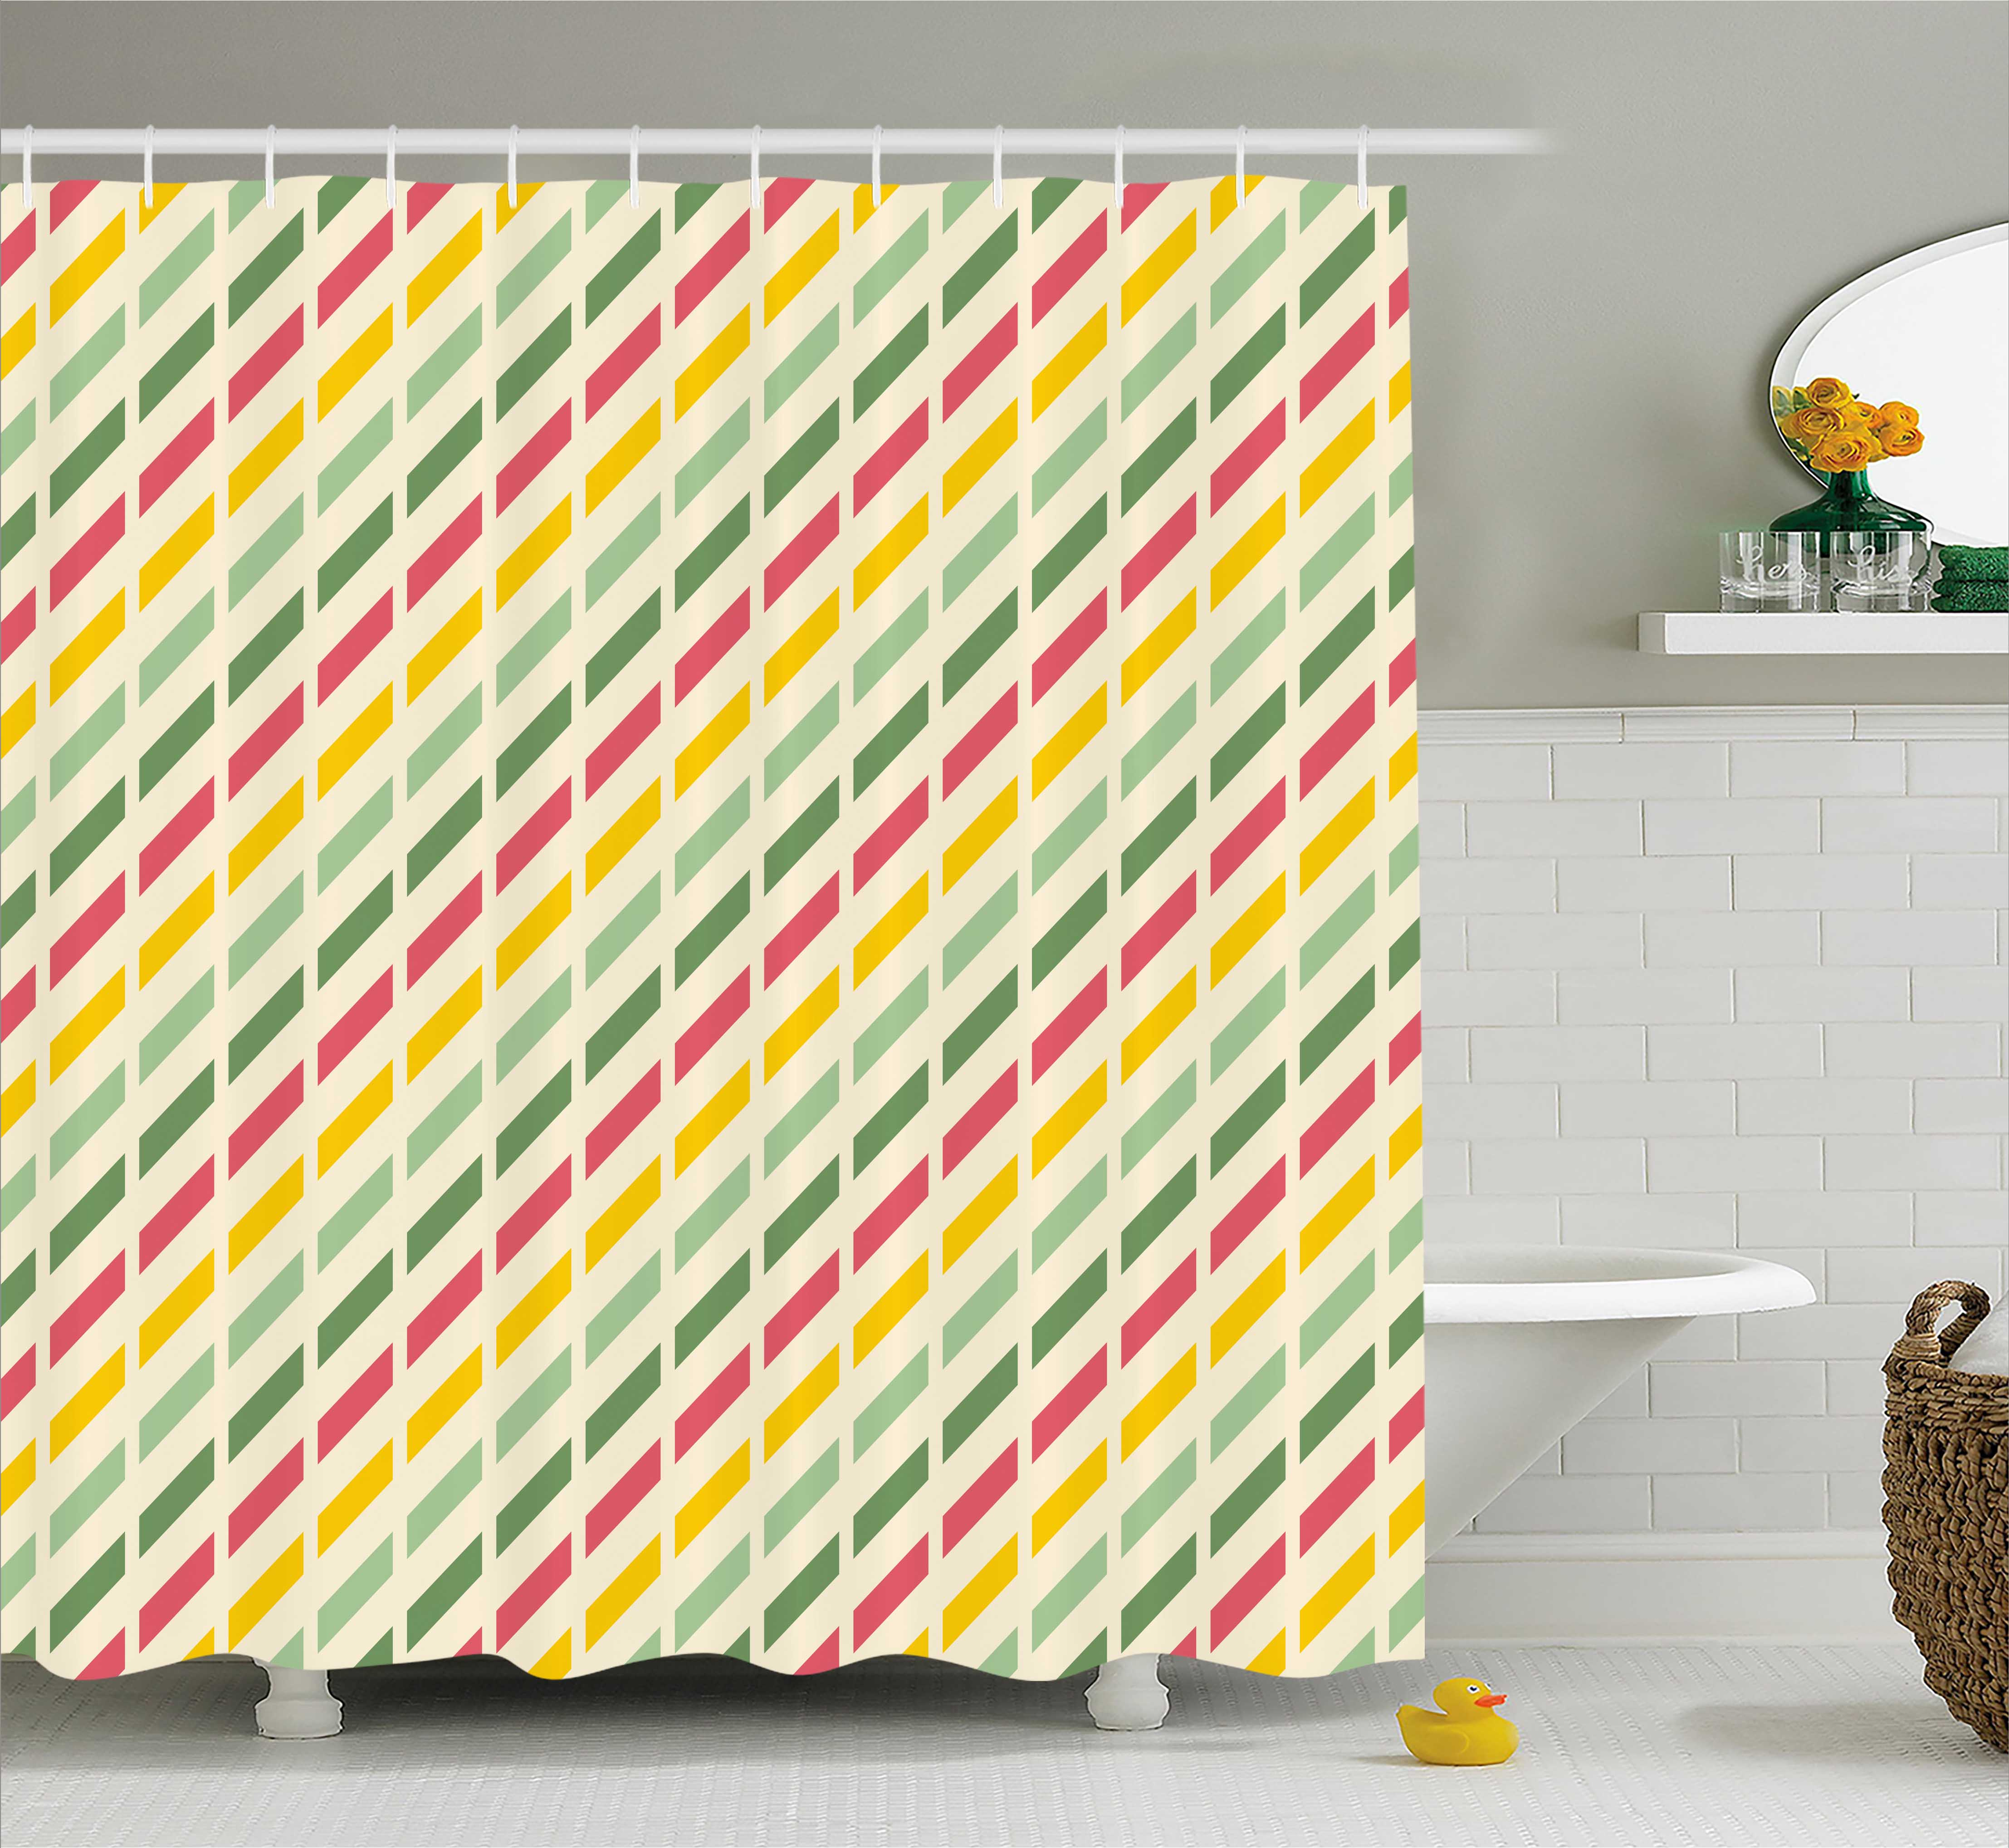 Retro Shower Curtain, Colorful Retro Cut Lines Diagonal Pattern in Pastel Colors Simplistic Summer Inspired, Fabric Bathroom Set with Hooks, 69W X 75L Inches Long, Multicolor, by Ambesonne